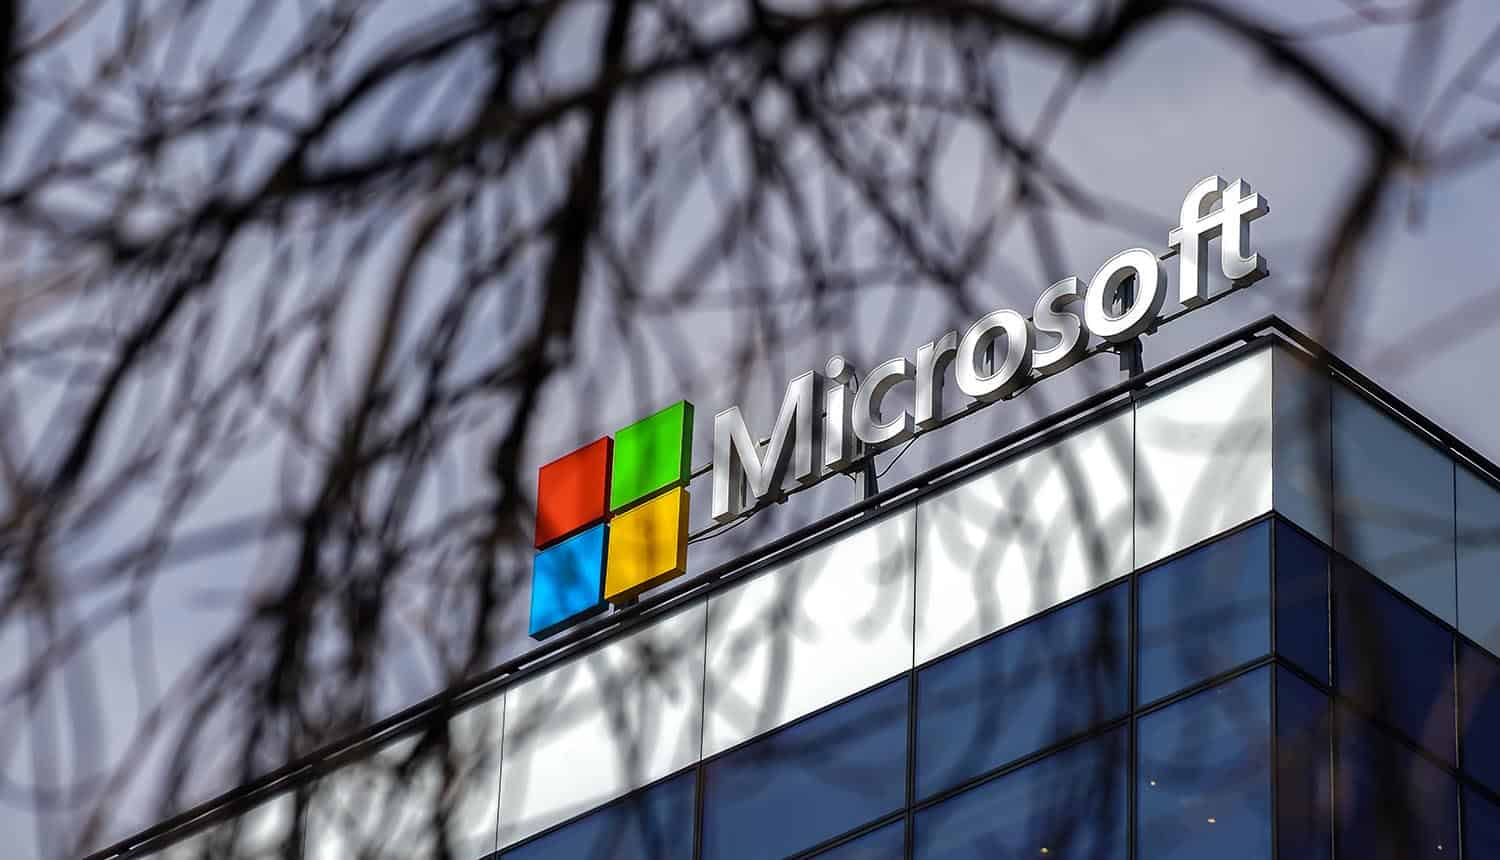 Microsoft logo seen above its headquarters showing ransomware attacks on Exchange servers